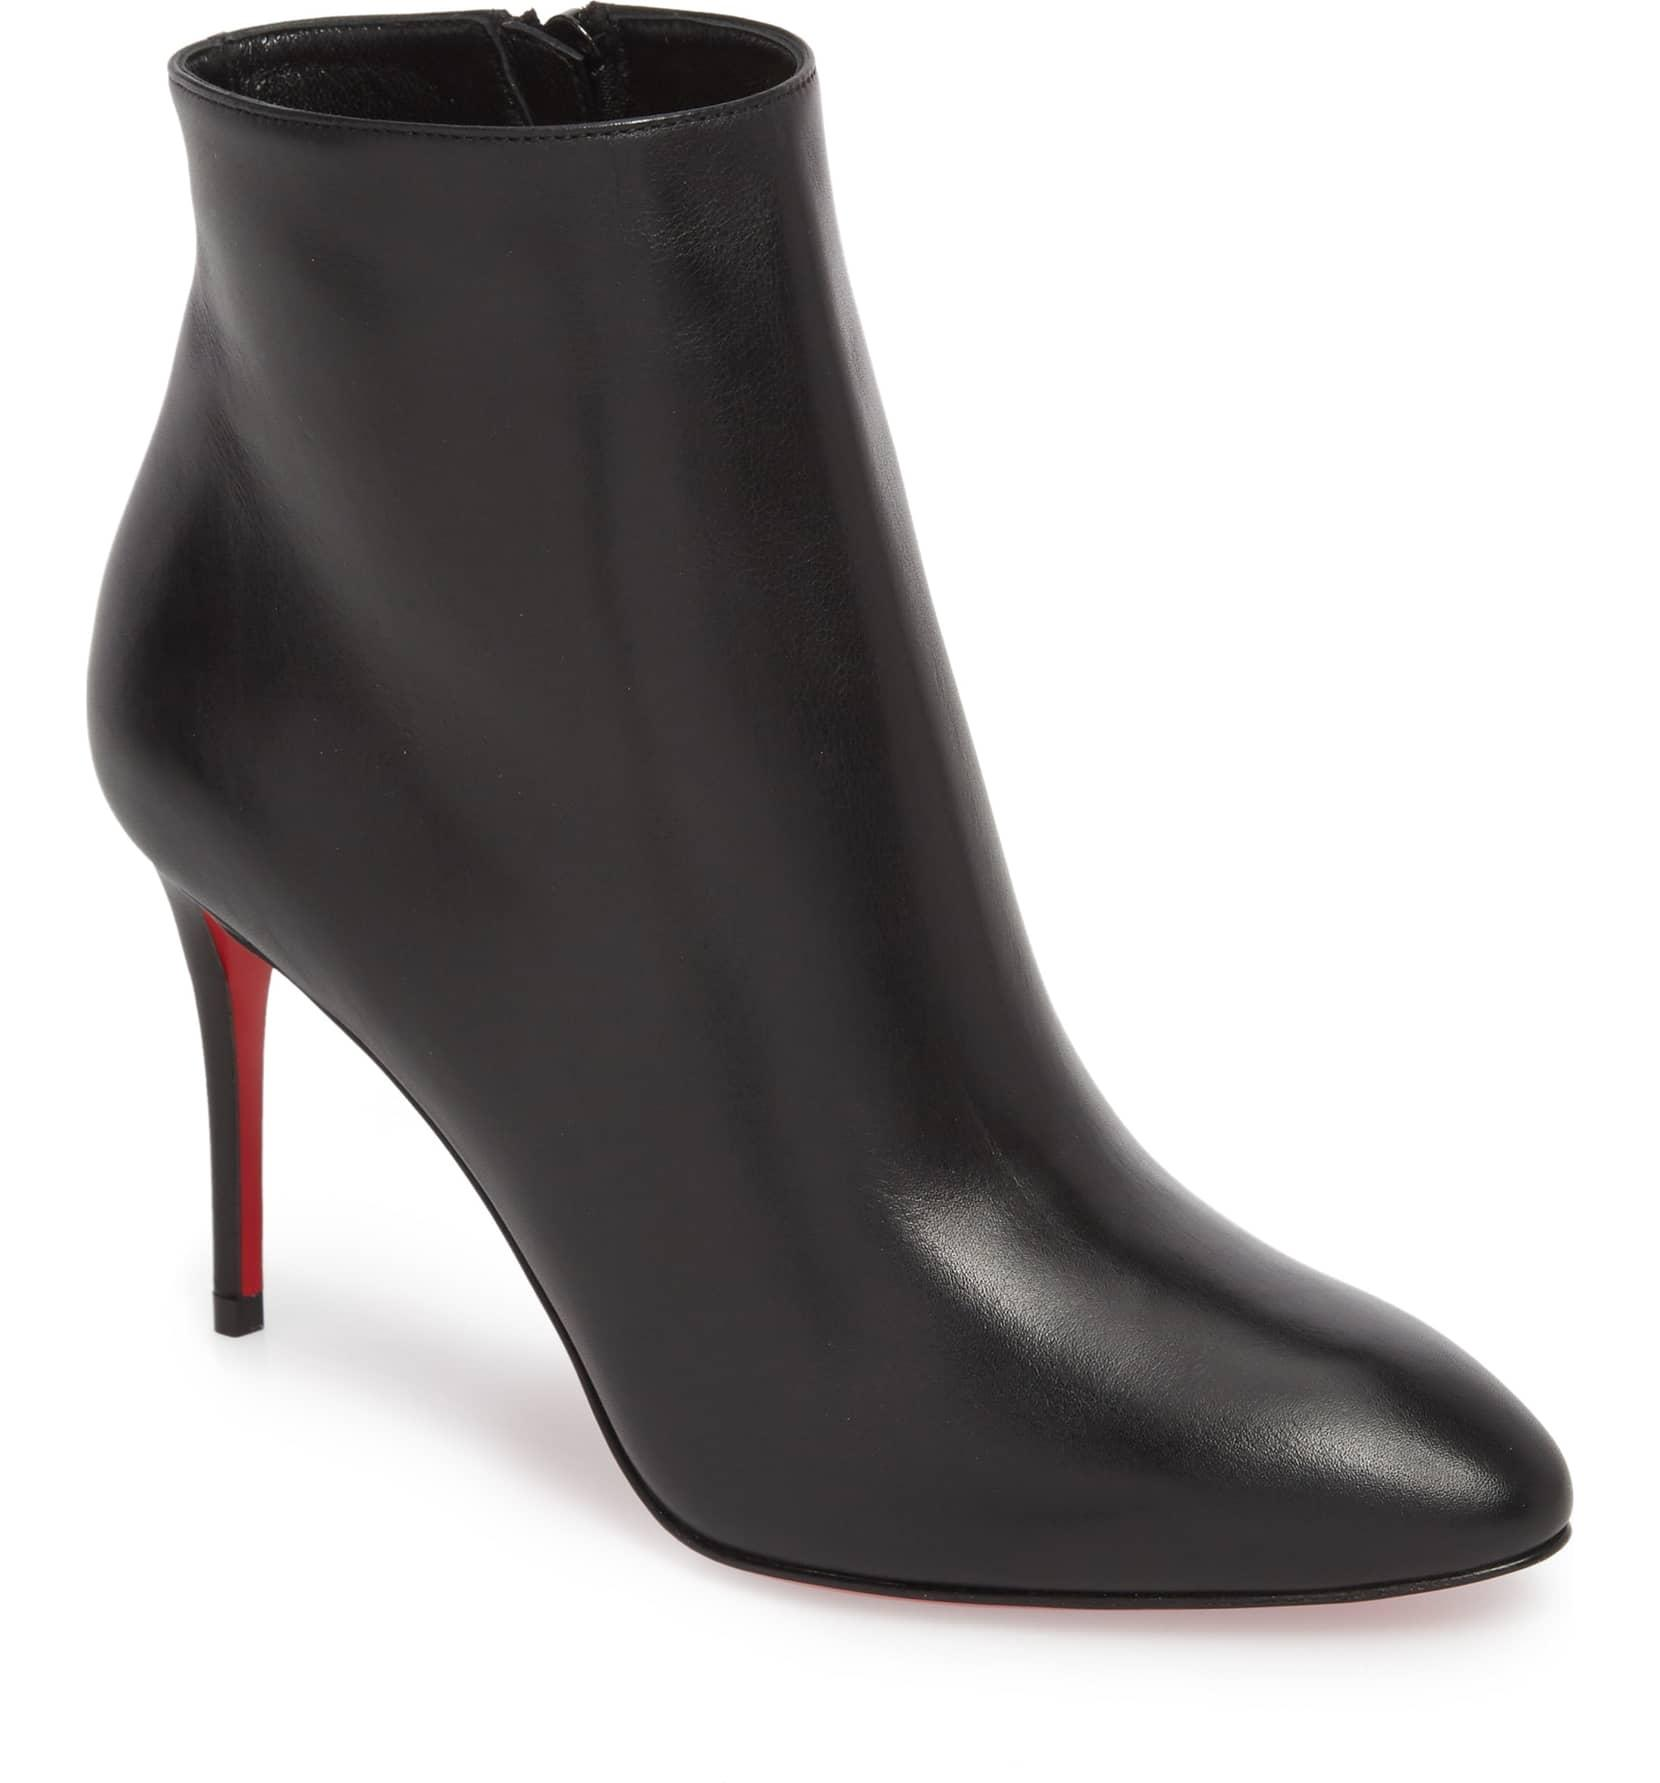 0d0f139cab6 get christian louboutin telezip leather ankle boots boots 505325166 b3d47  c721d  hot christian louboutin boots booties up to 70 off at tradesy e4fc5  00335